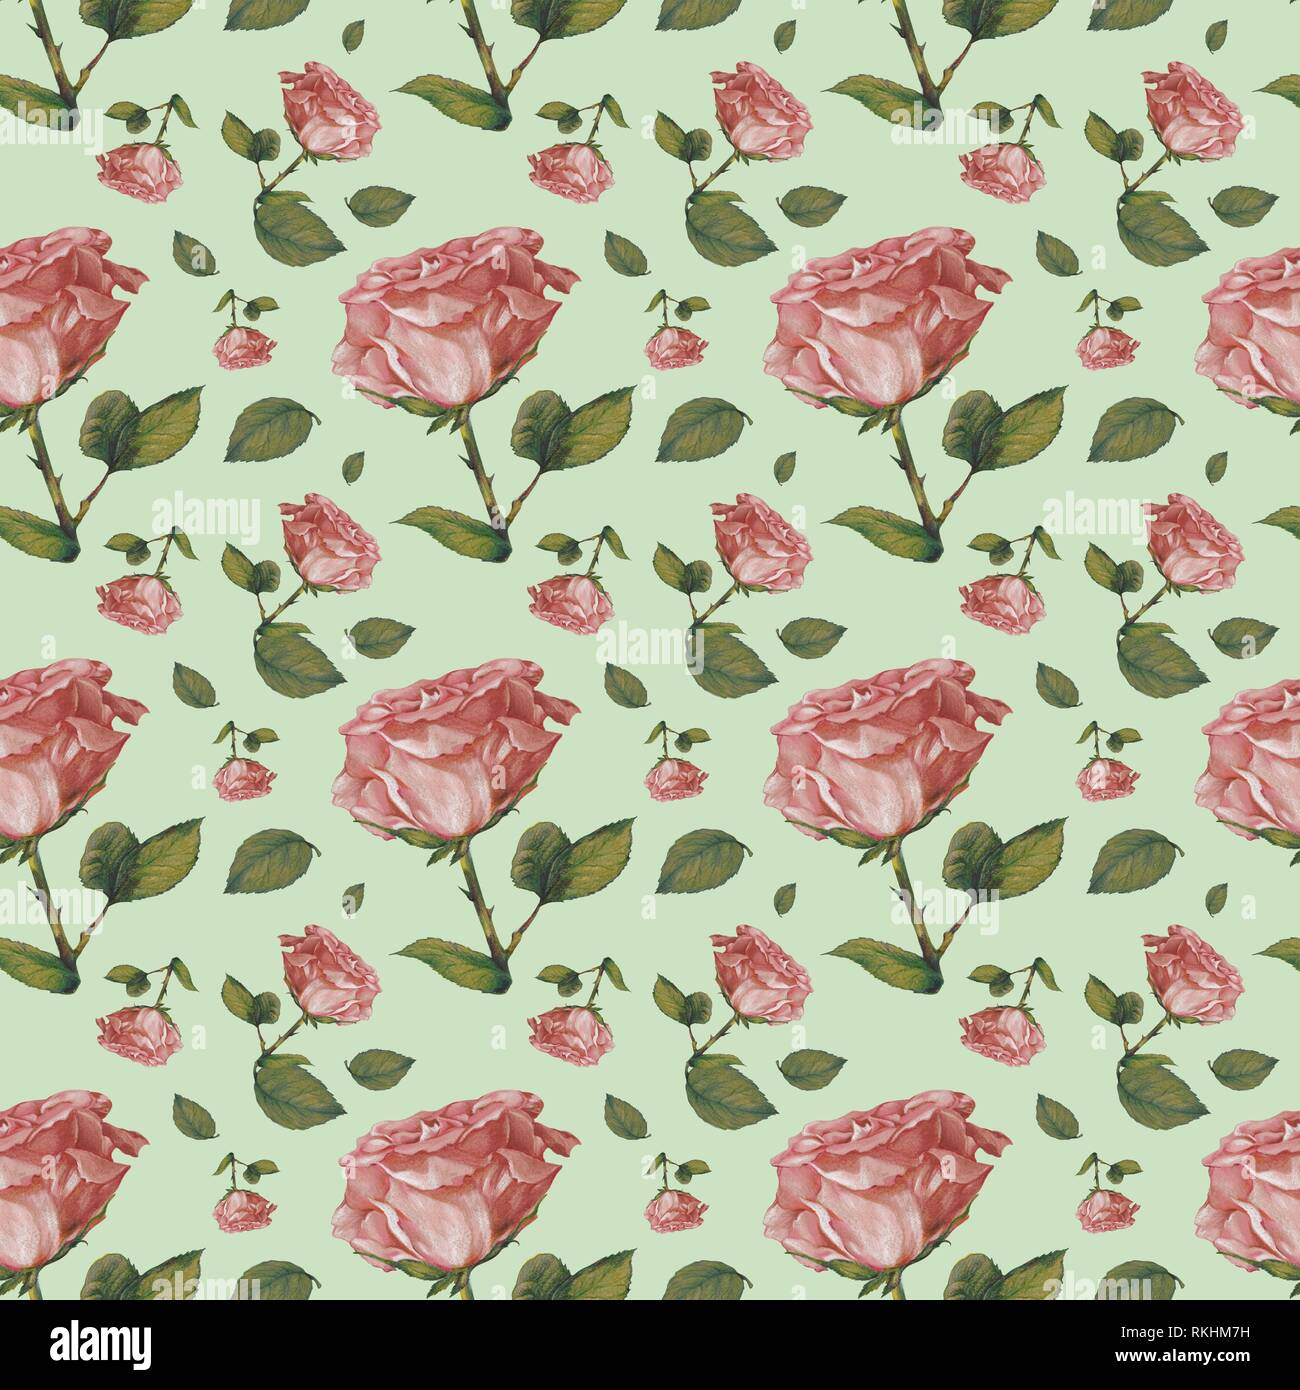 Wallpaper Wrapping Paper Seamless Pattern Old Pink Roses